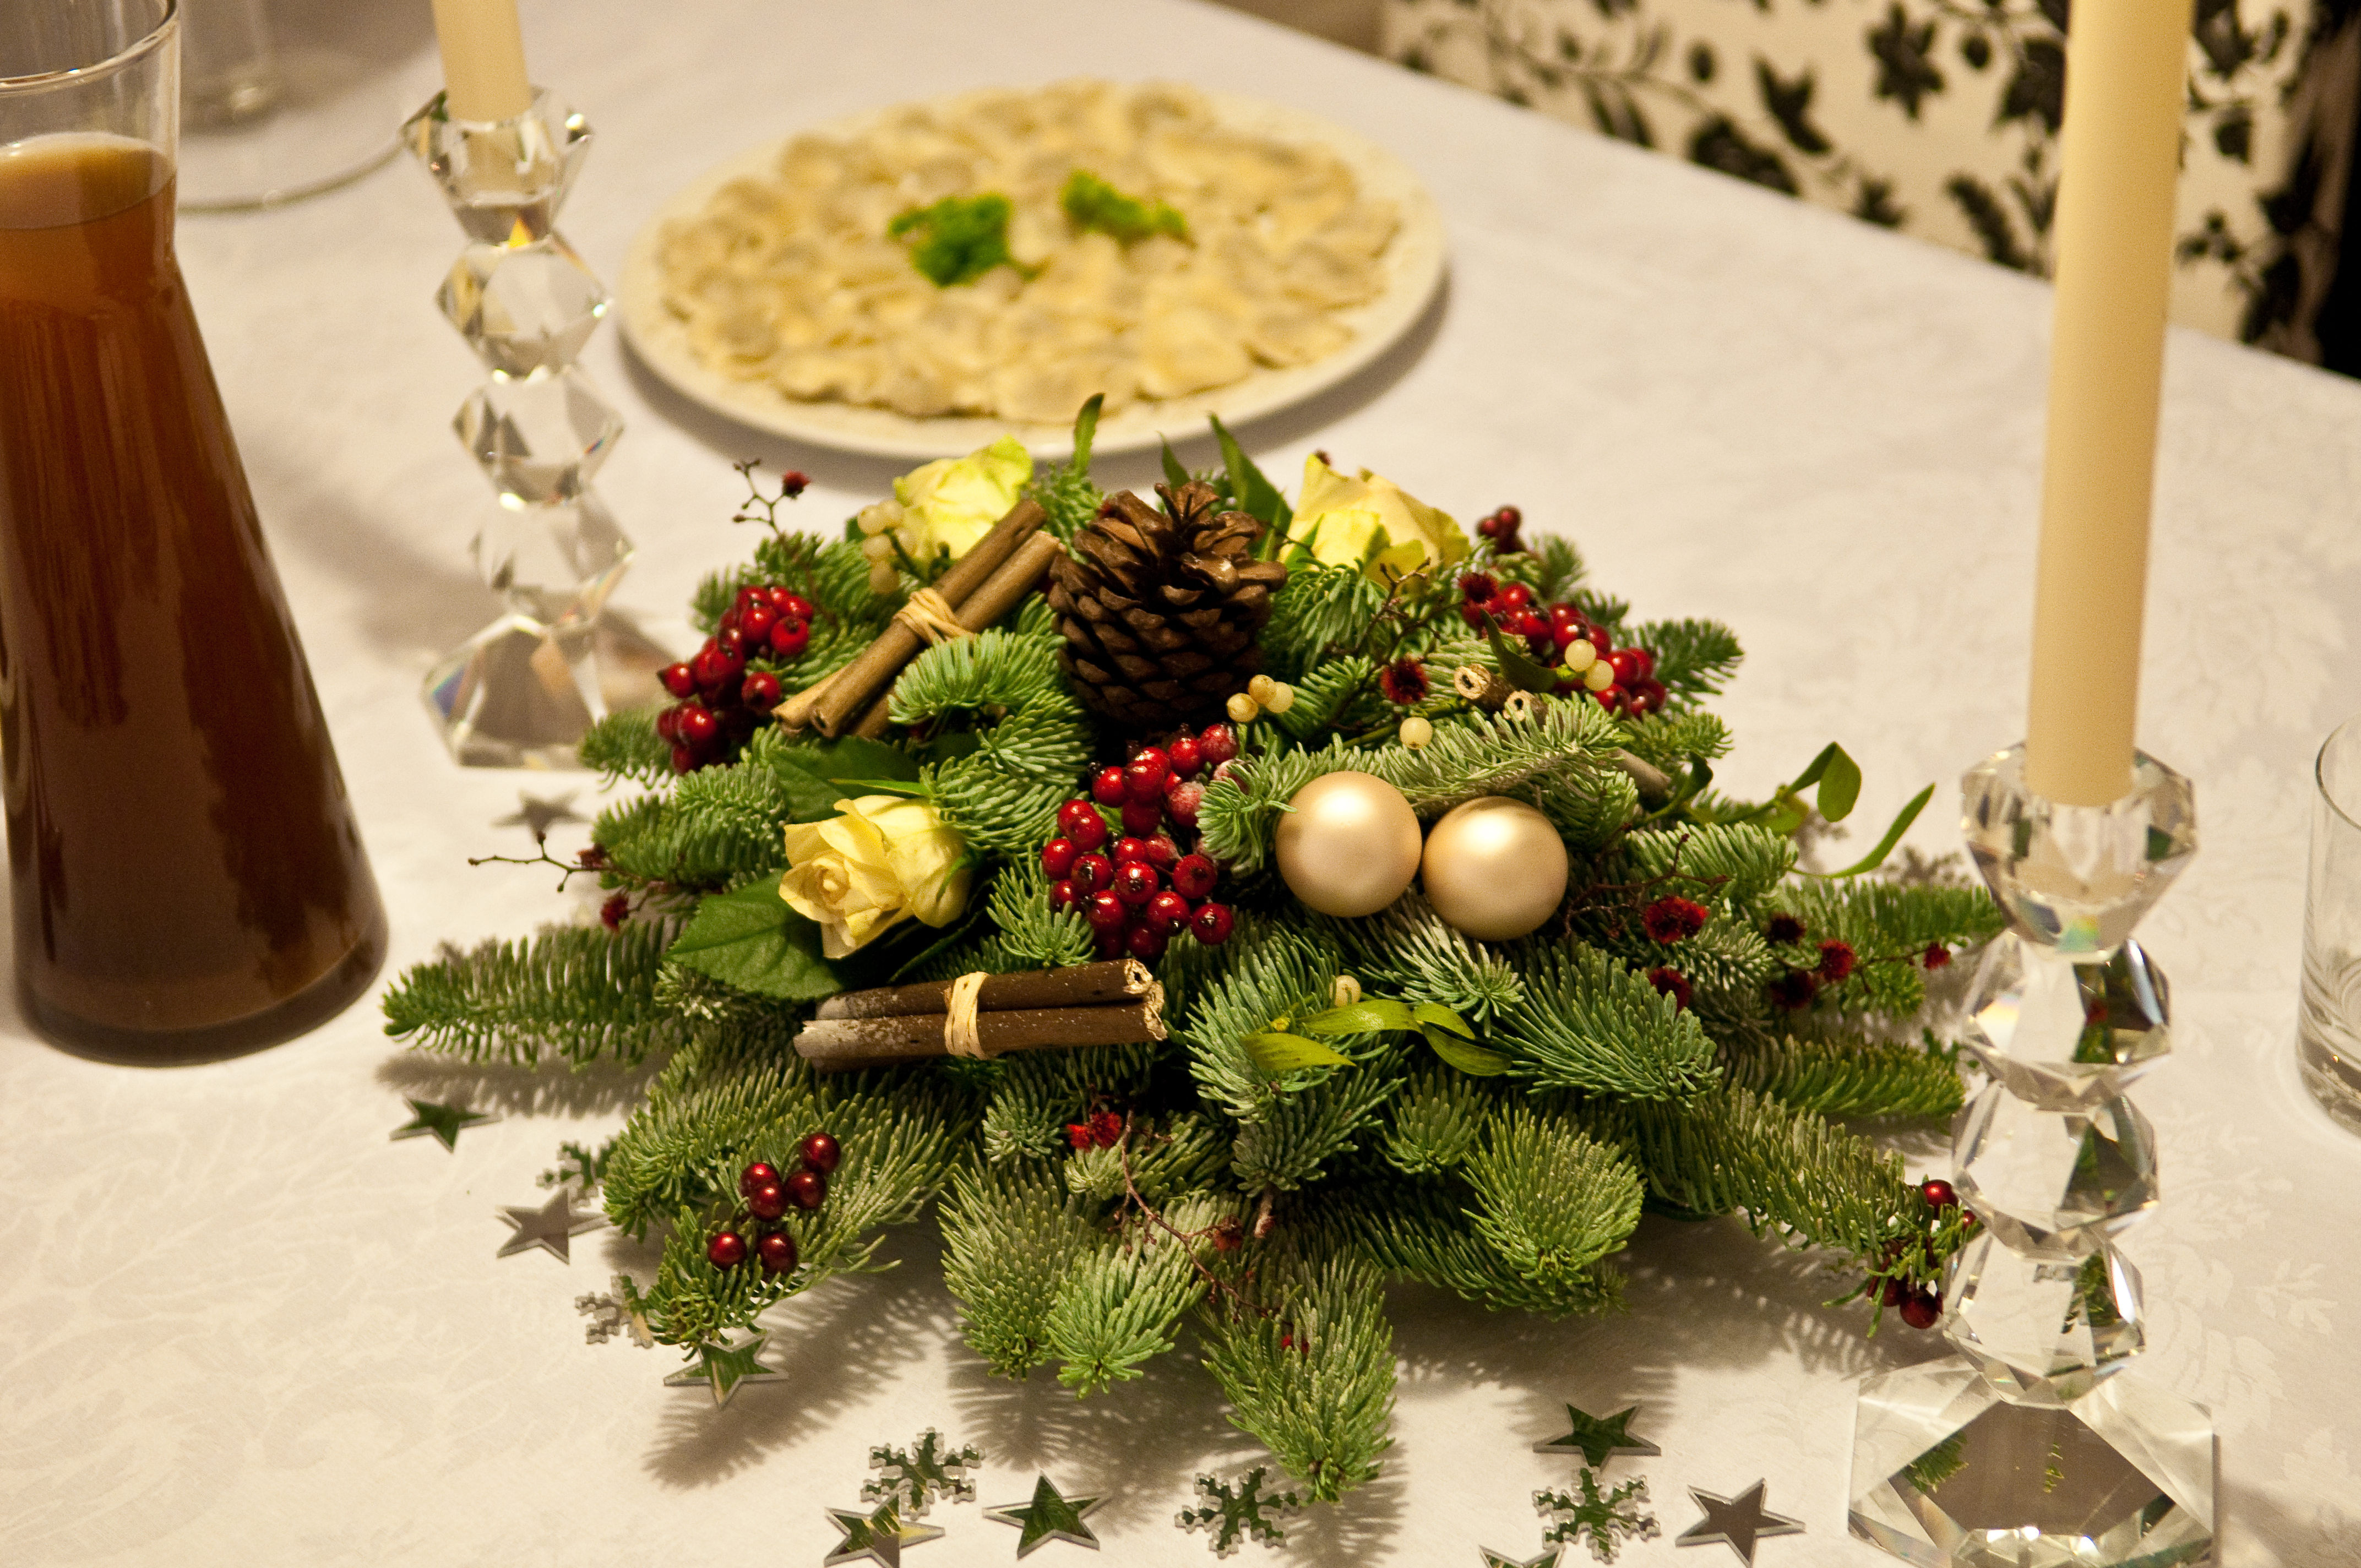 File:Christmas table decoration (4219338789).jpg - Wikimedia Commons